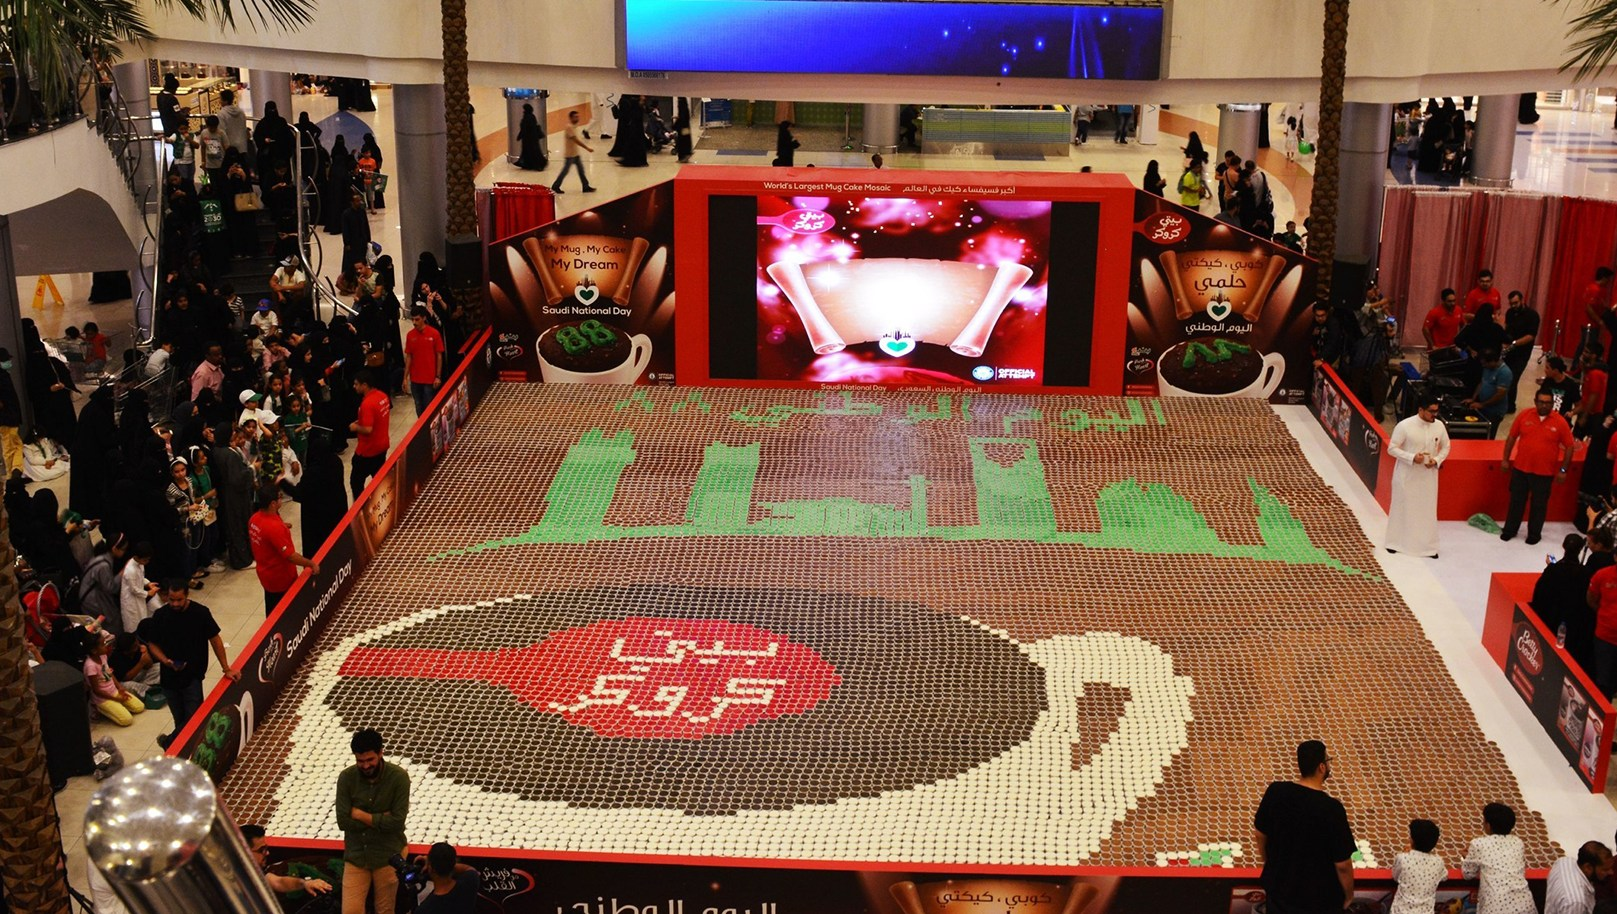 Betty Crocker Sets New Guinness World Record for Largest Mosaic Made With Mug Cakes